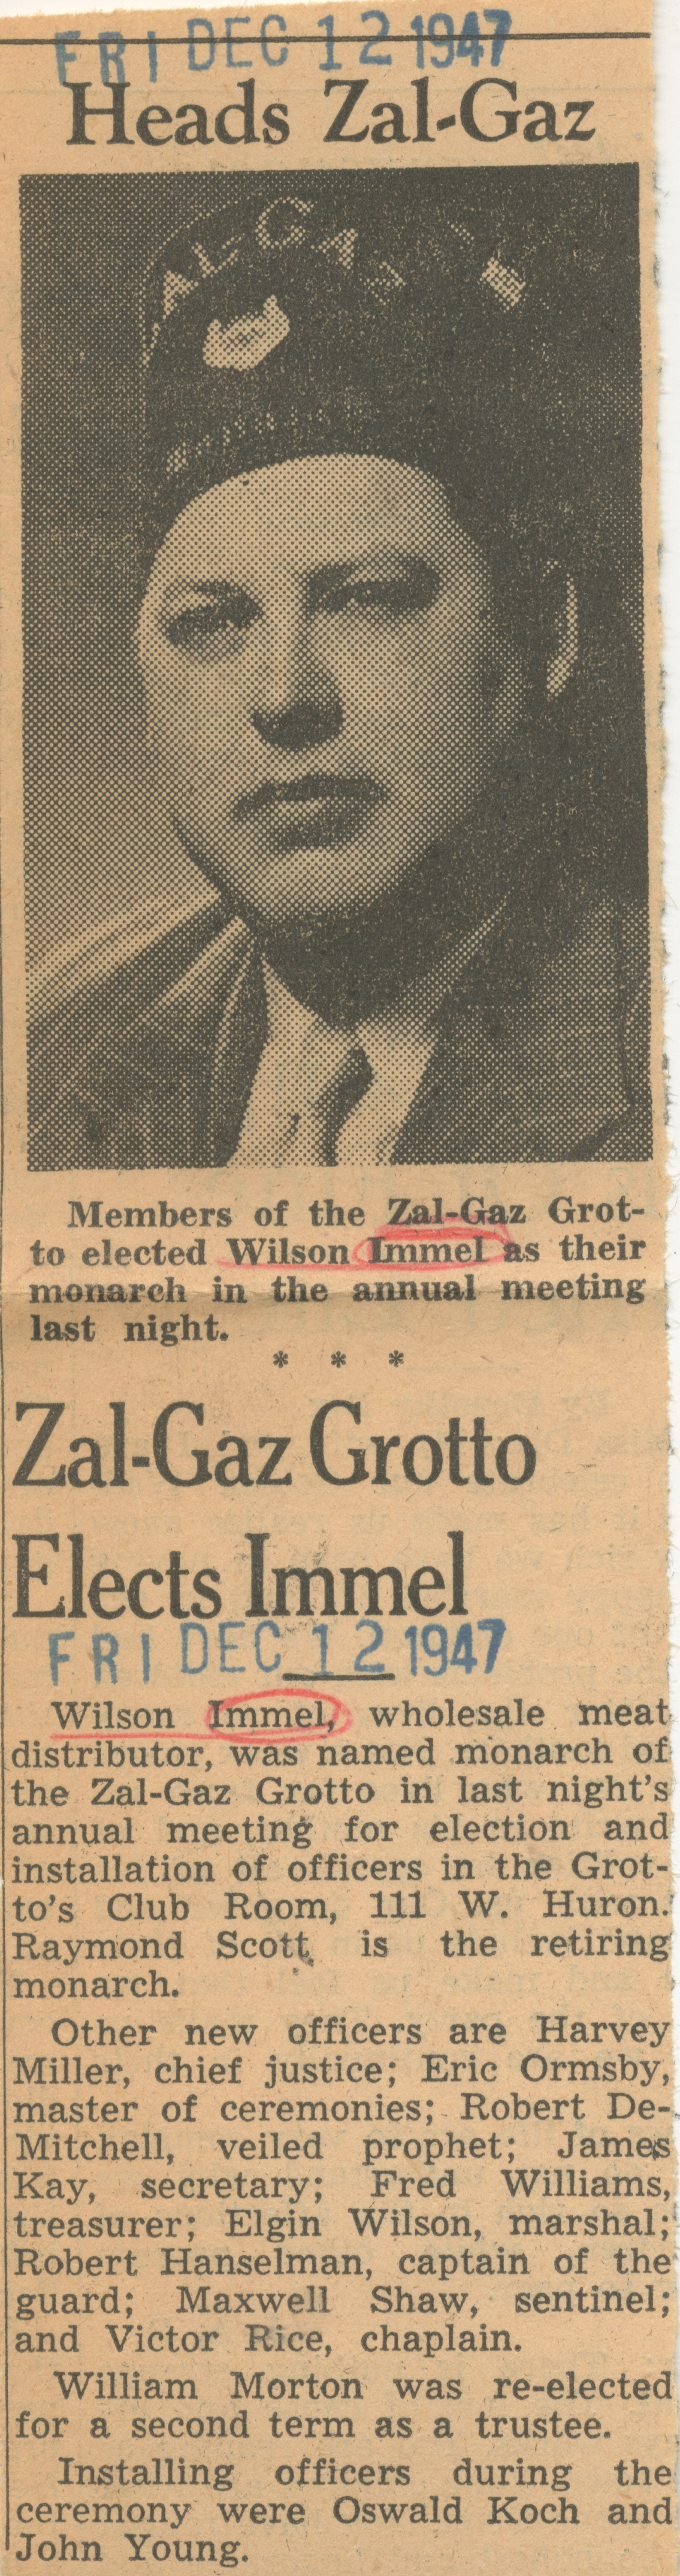 Zal-Gaz Grotto Elects Immel image